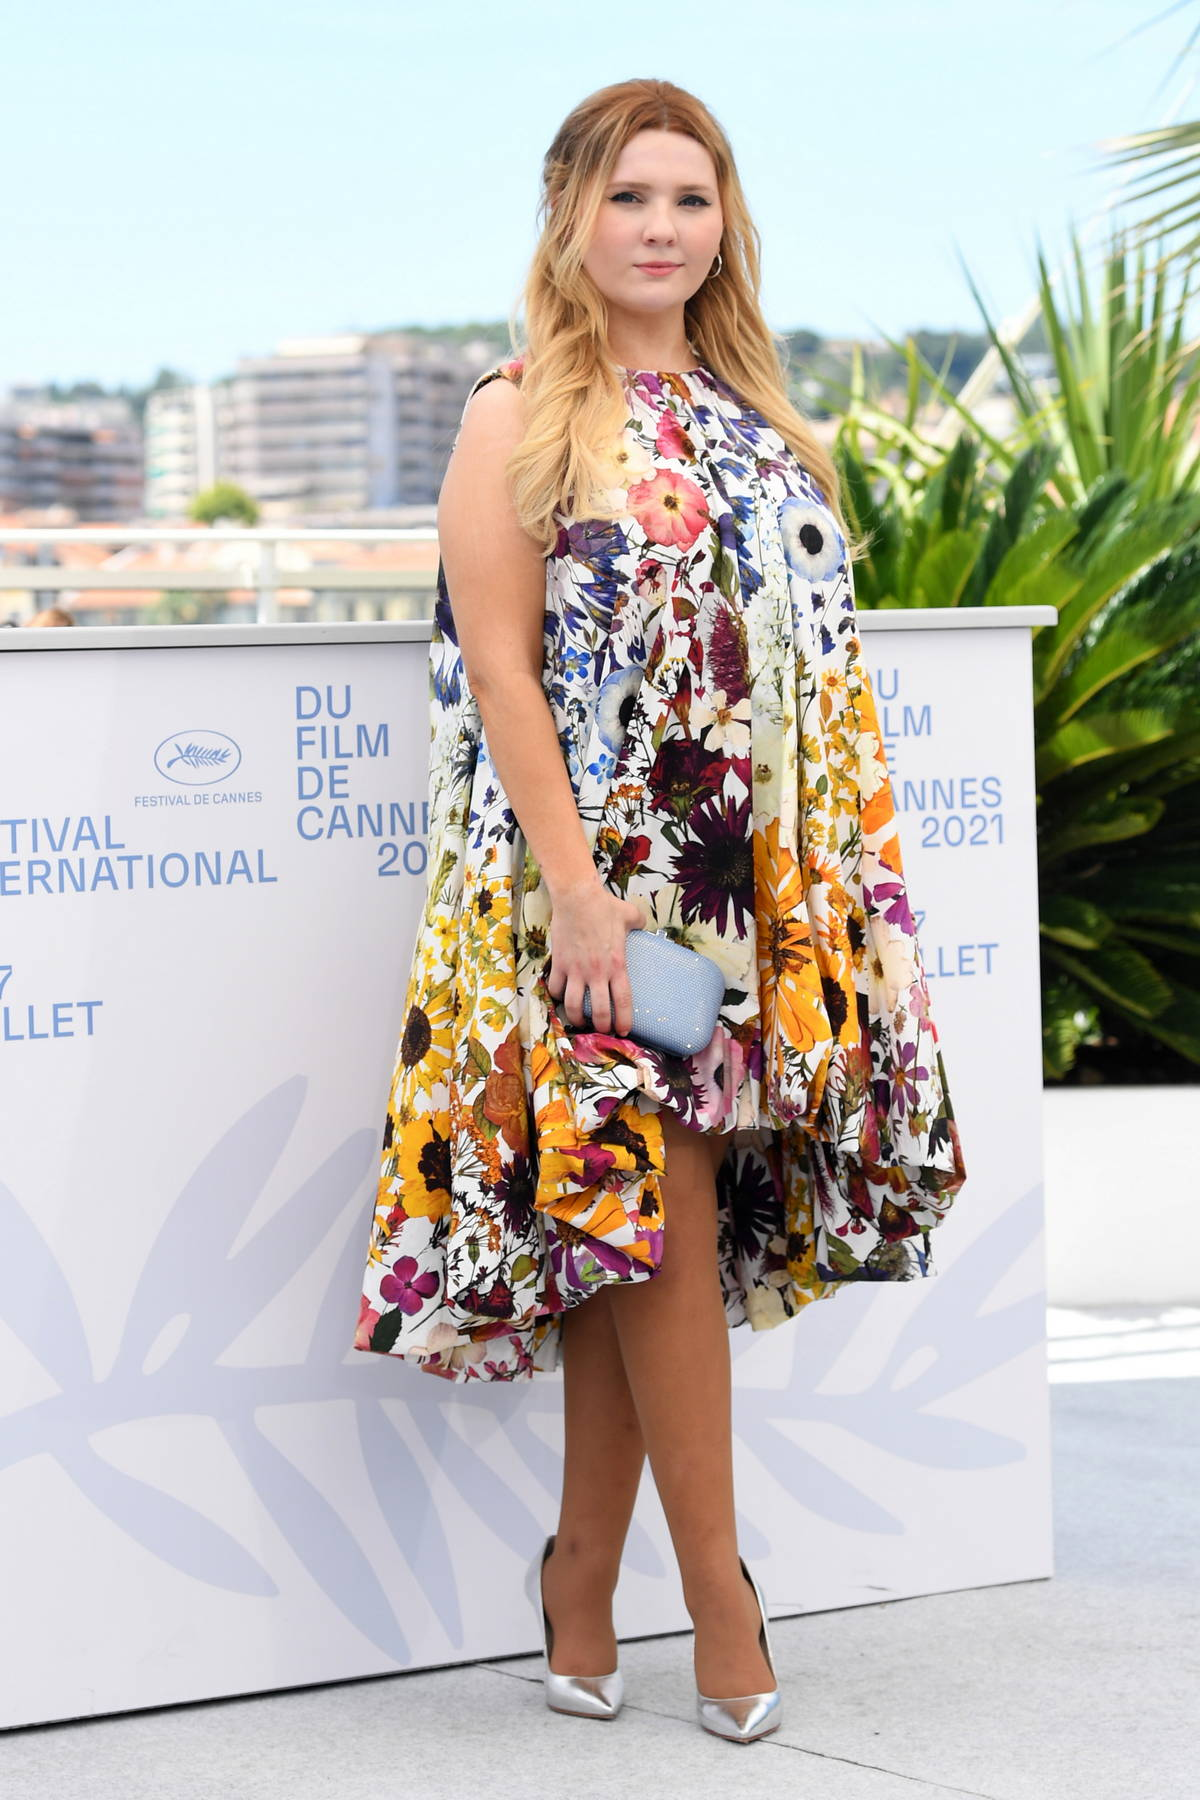 Abigail Breslin attends Stillwater photocall and press conference during the 74th annual Cannes Film Festival in Cannes, France